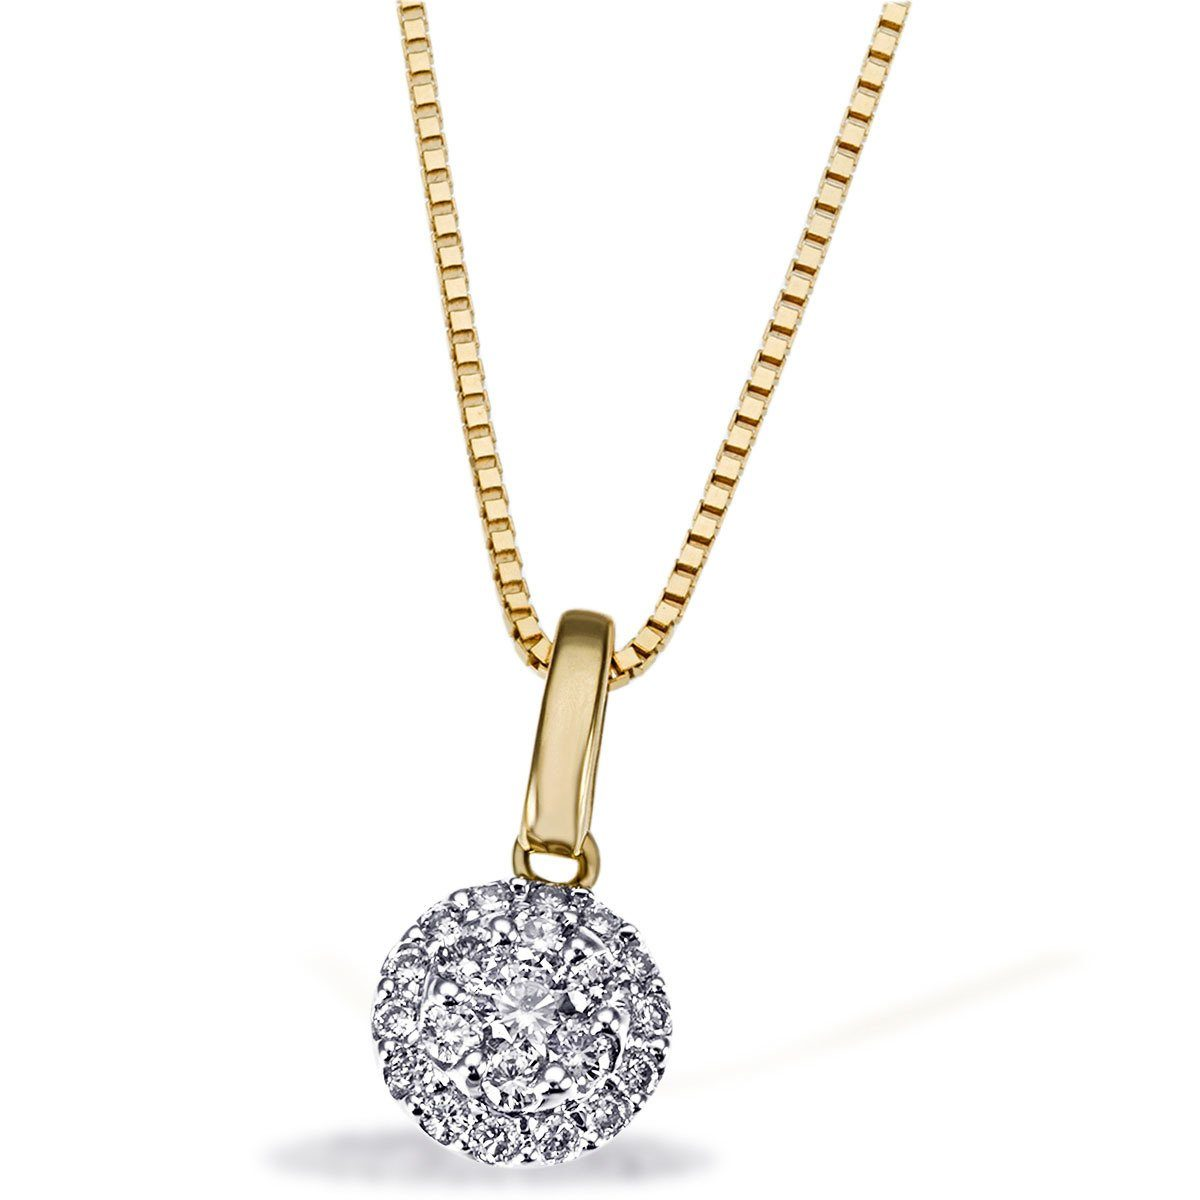 goldmaid Collier 585 Gelbgold 21 Brillanten 0,25 ct.